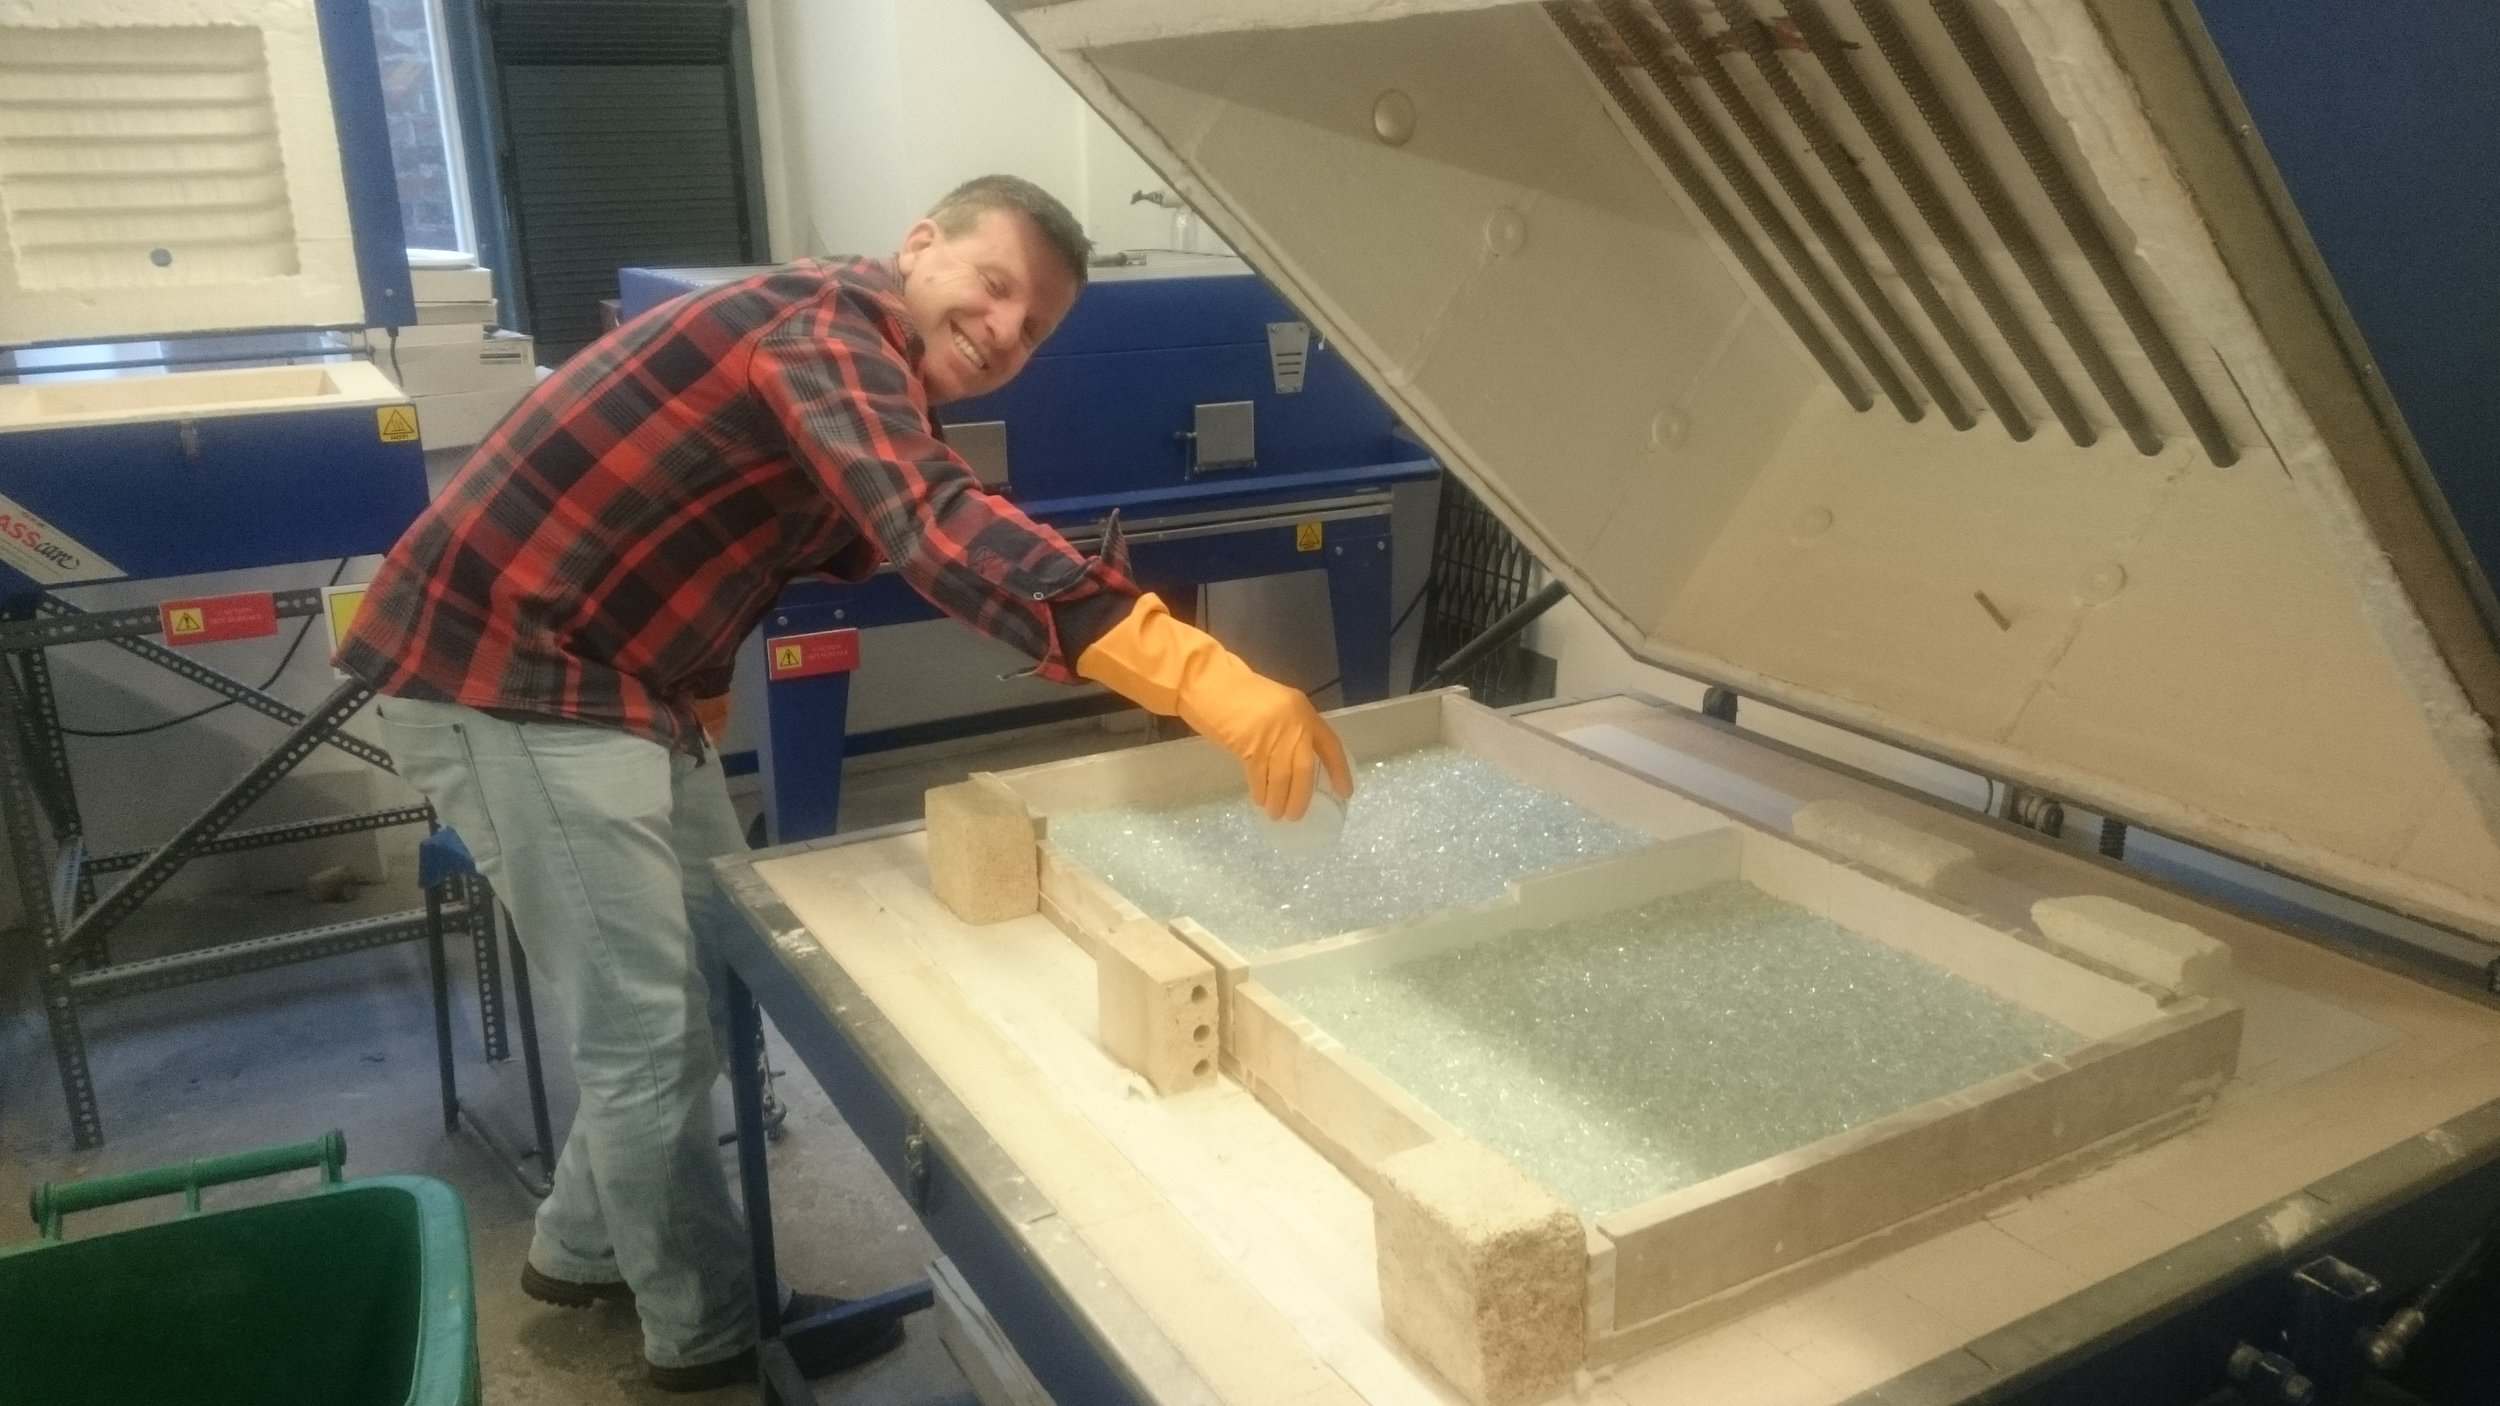 David Halley making samples for impact testing of the recycled glass